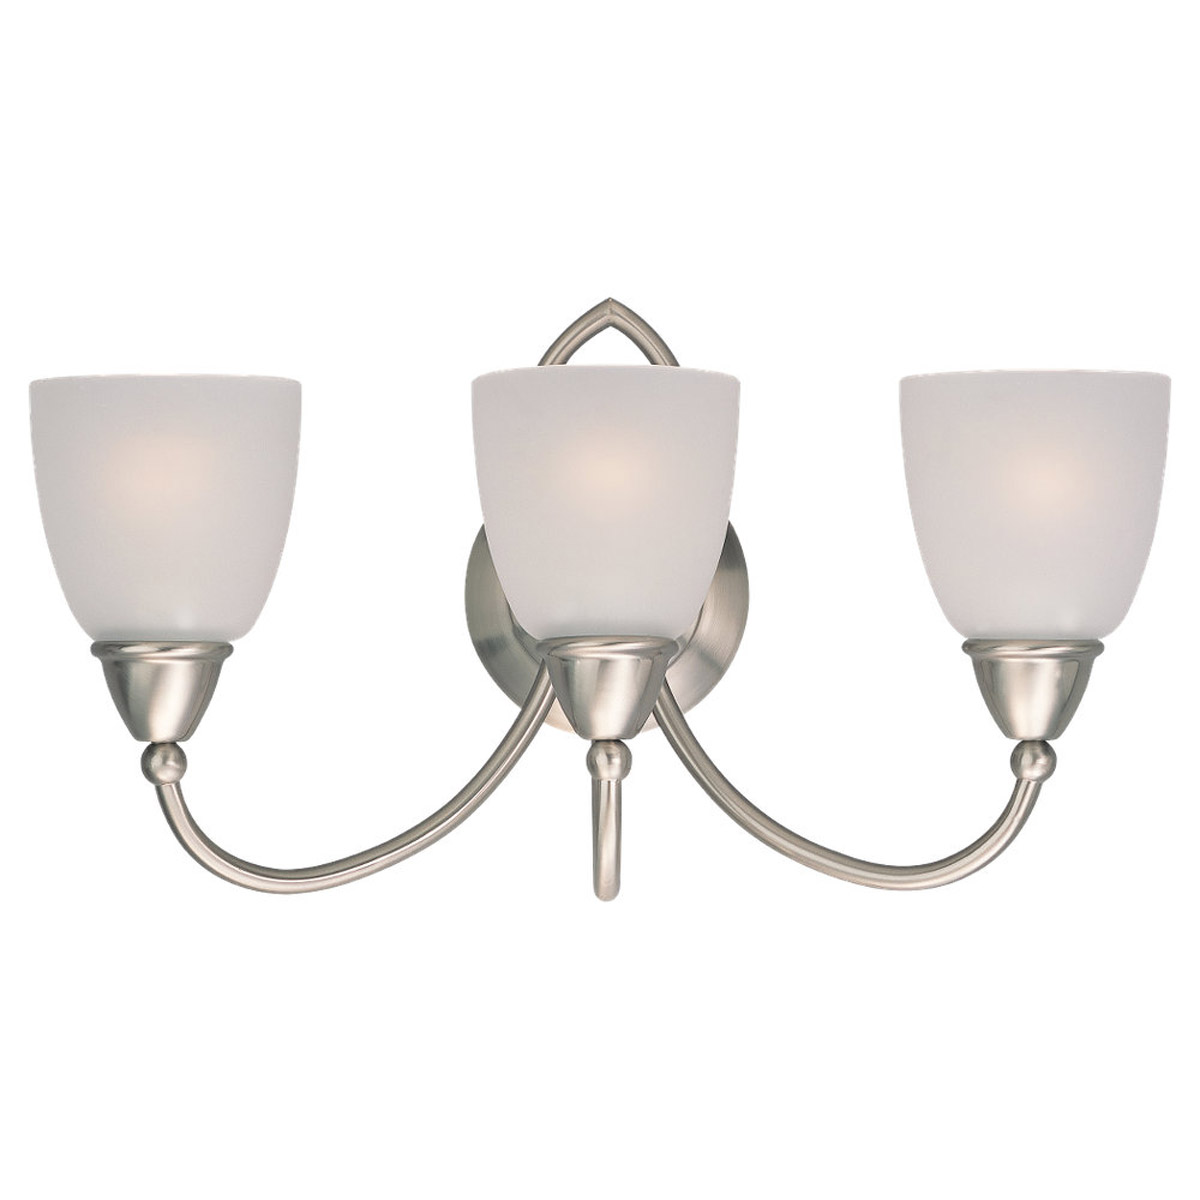 Sea Gull Lighting Pemberton 3 Light Bath Vanity in Brushed Nickel 40075-962